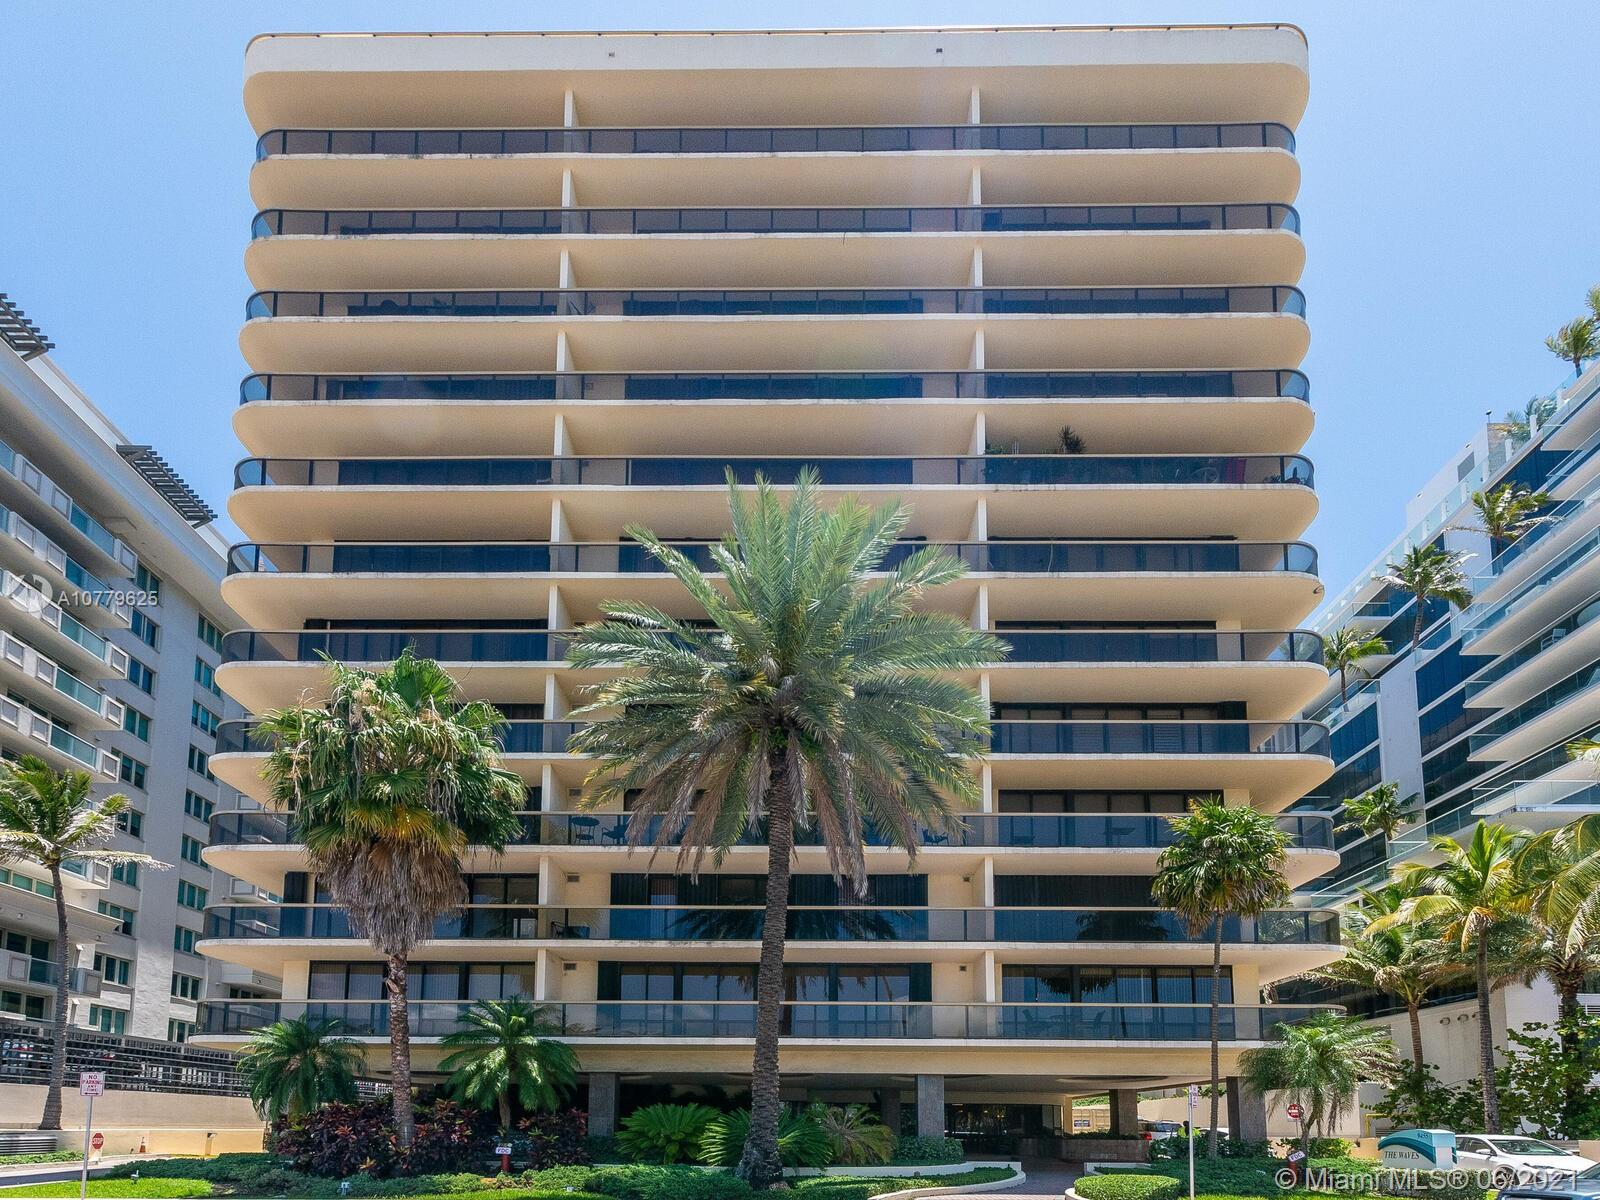 9455 Collins Ave #301 Surfside 33154